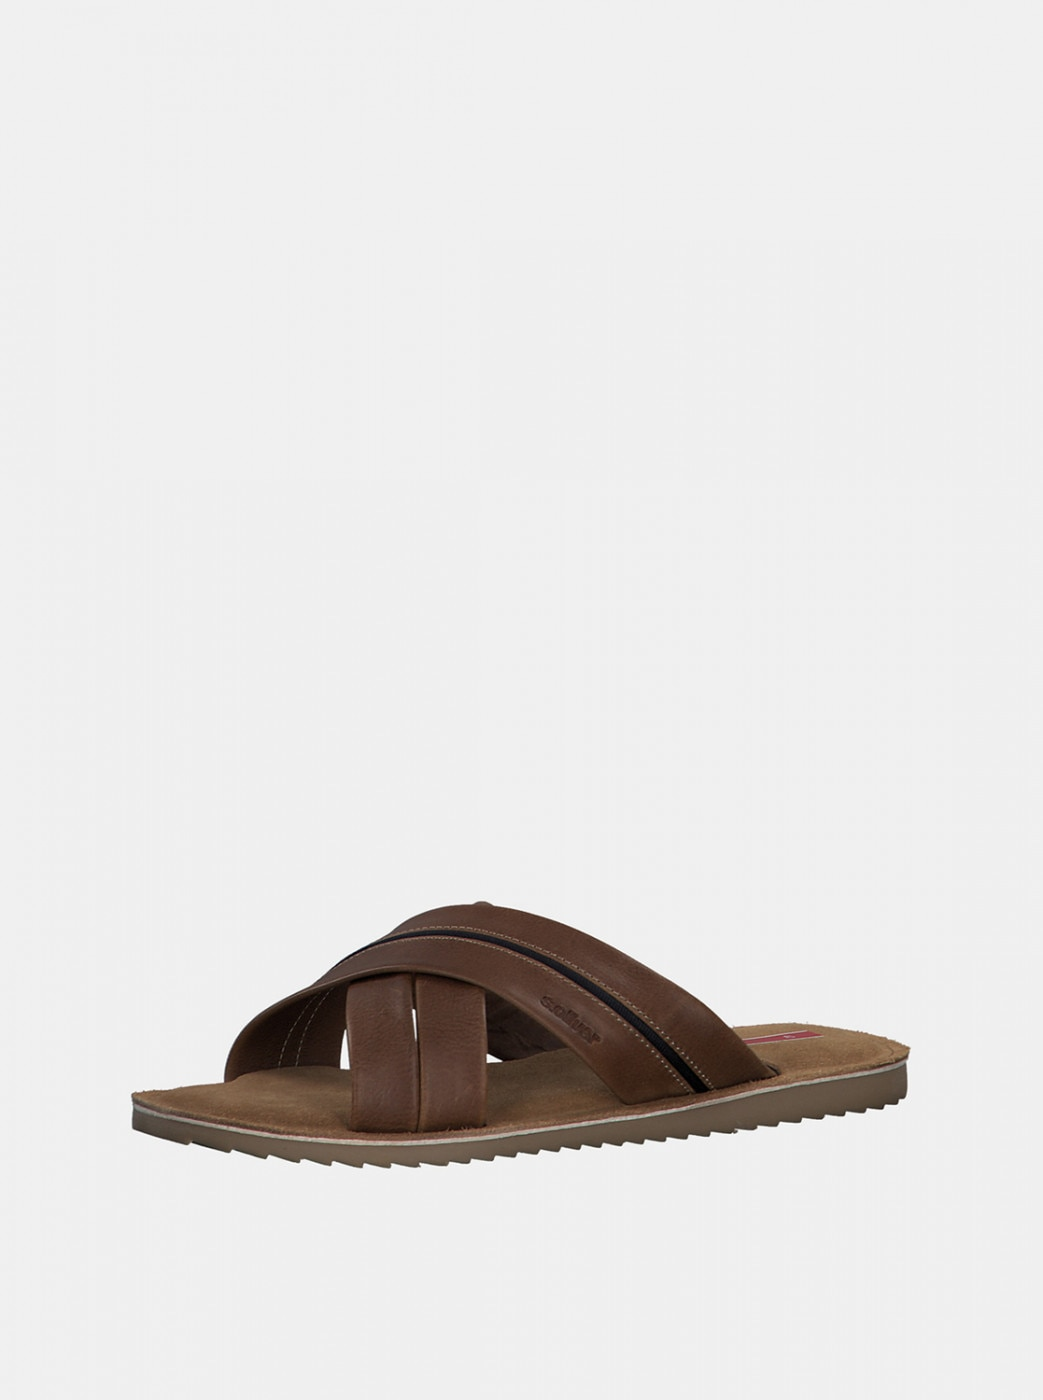 Brown Men's Leather Slippers s.Oliver